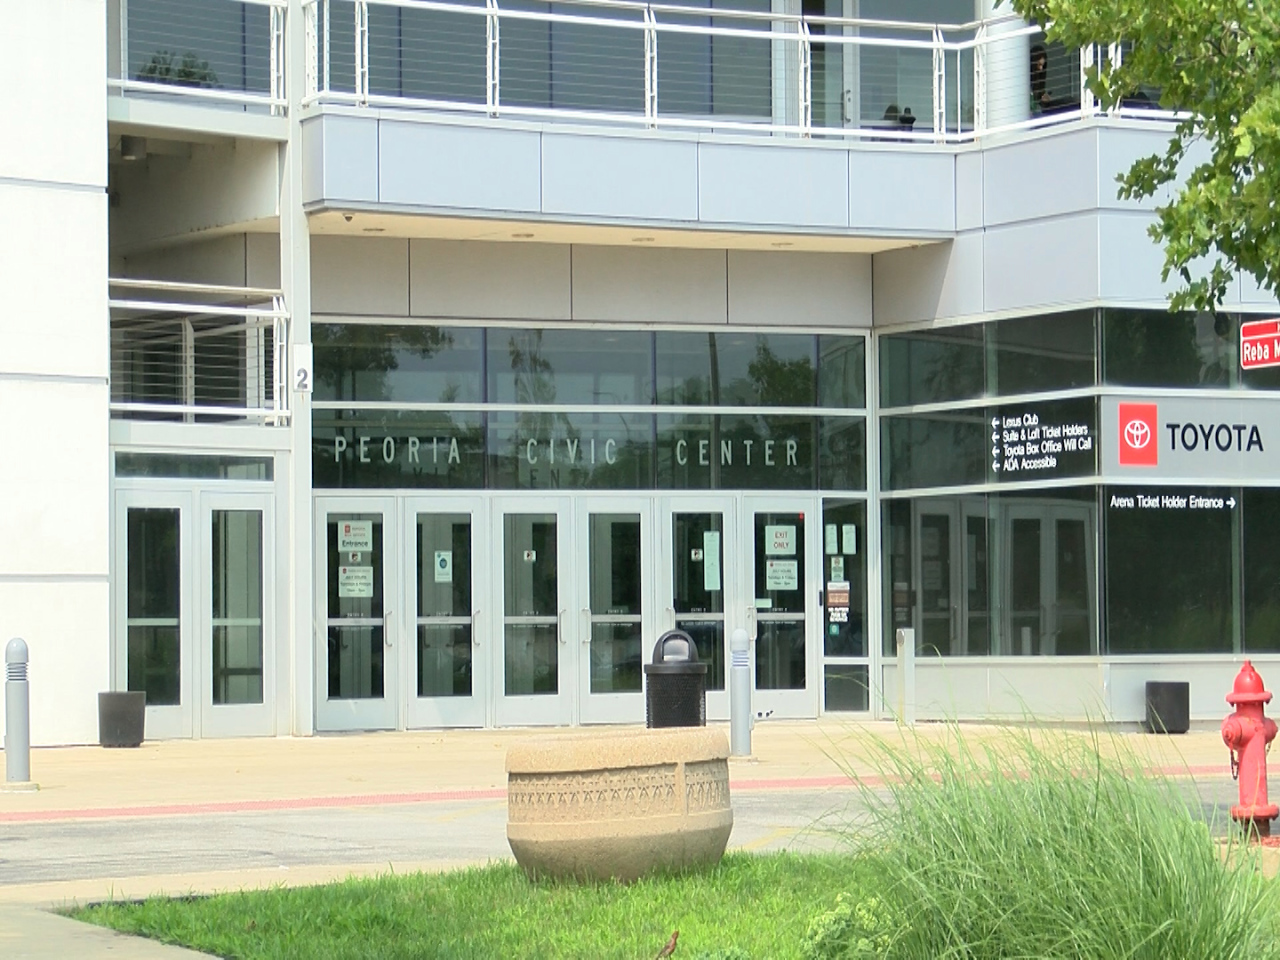 Peoria Civic Center excited to bring events back & downtown economic impact